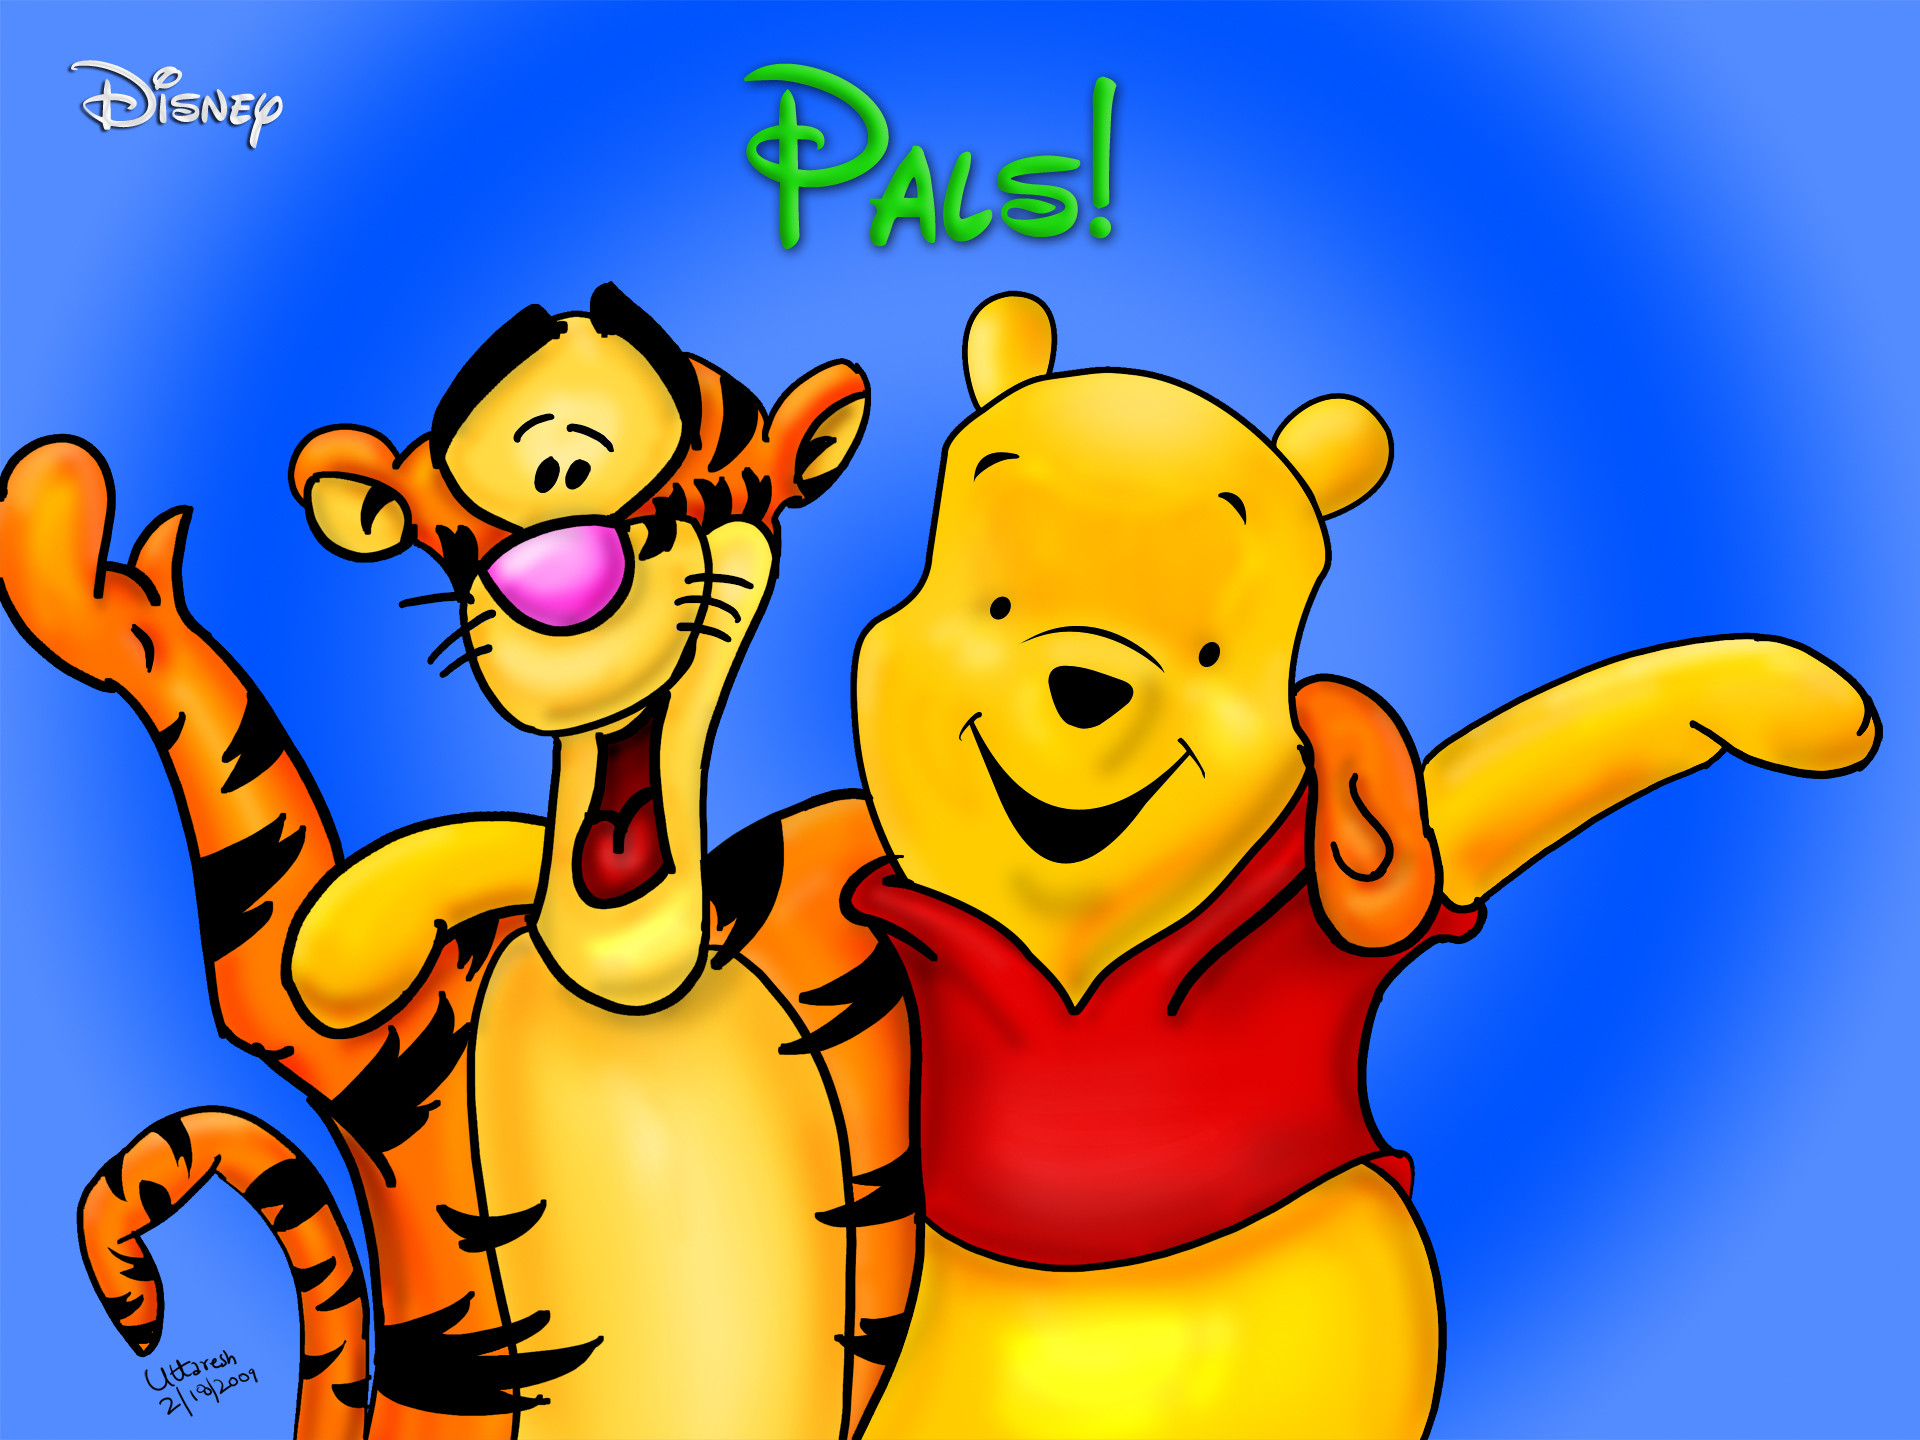 It's just a graphic of Clever Images of Pooh Bear